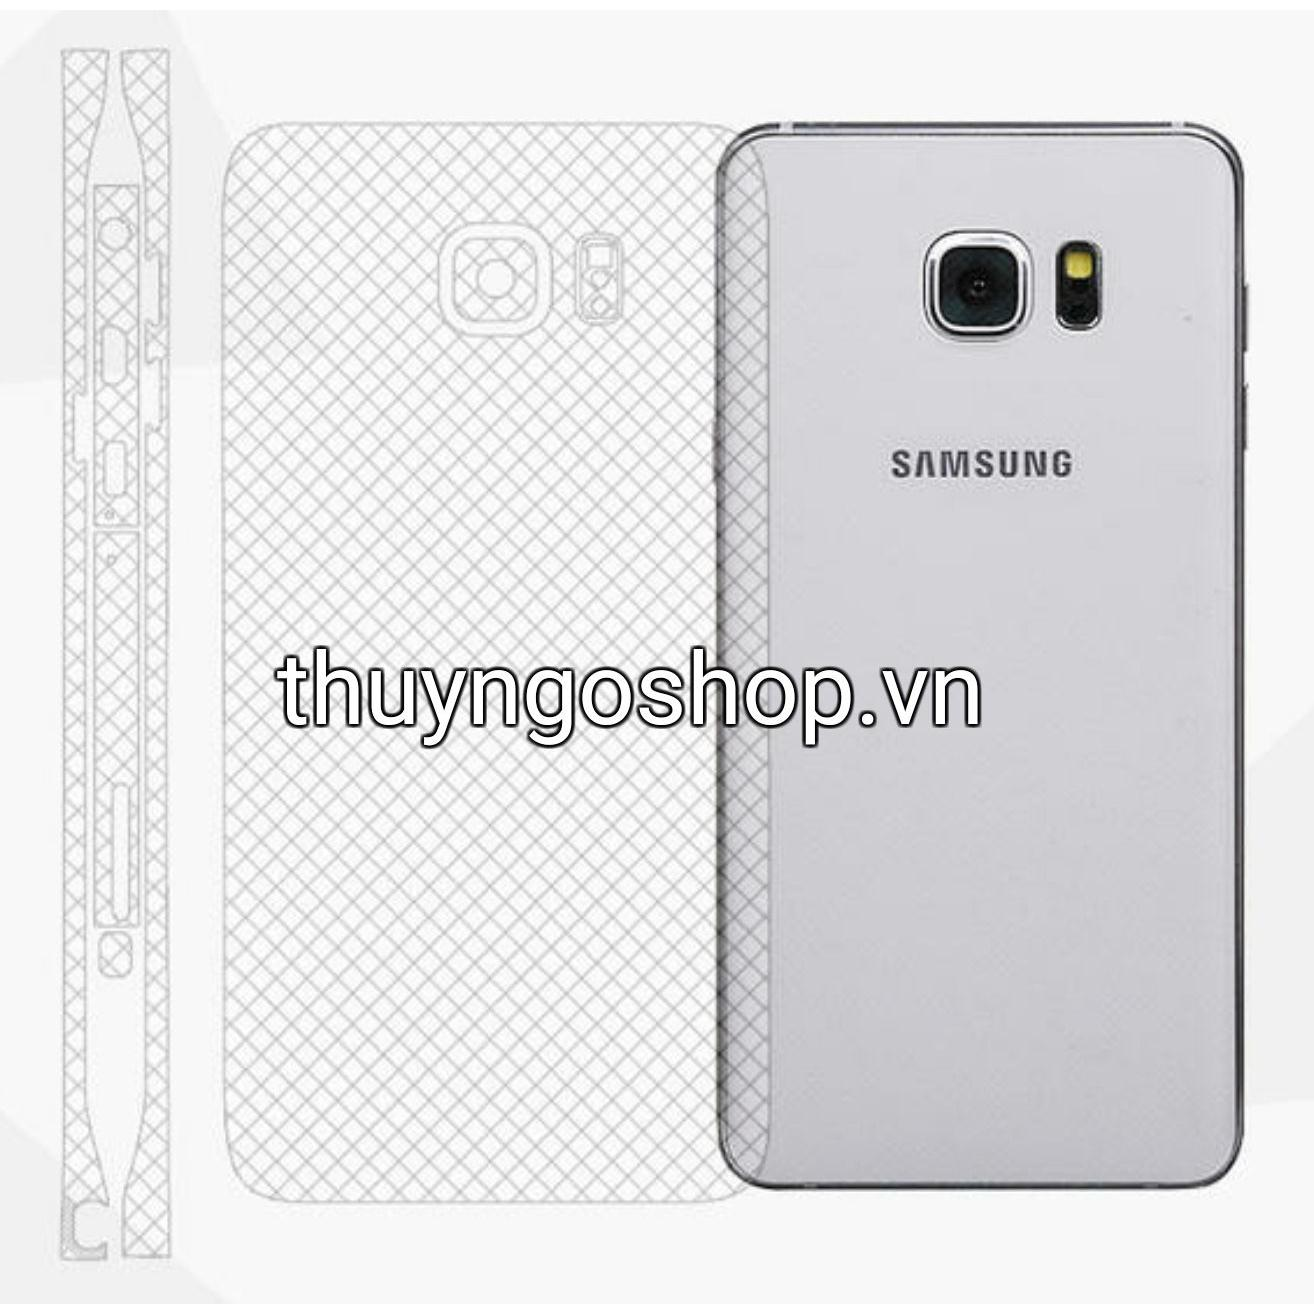 Bộ dán full body Samsung Galaxy S6 Egde plus